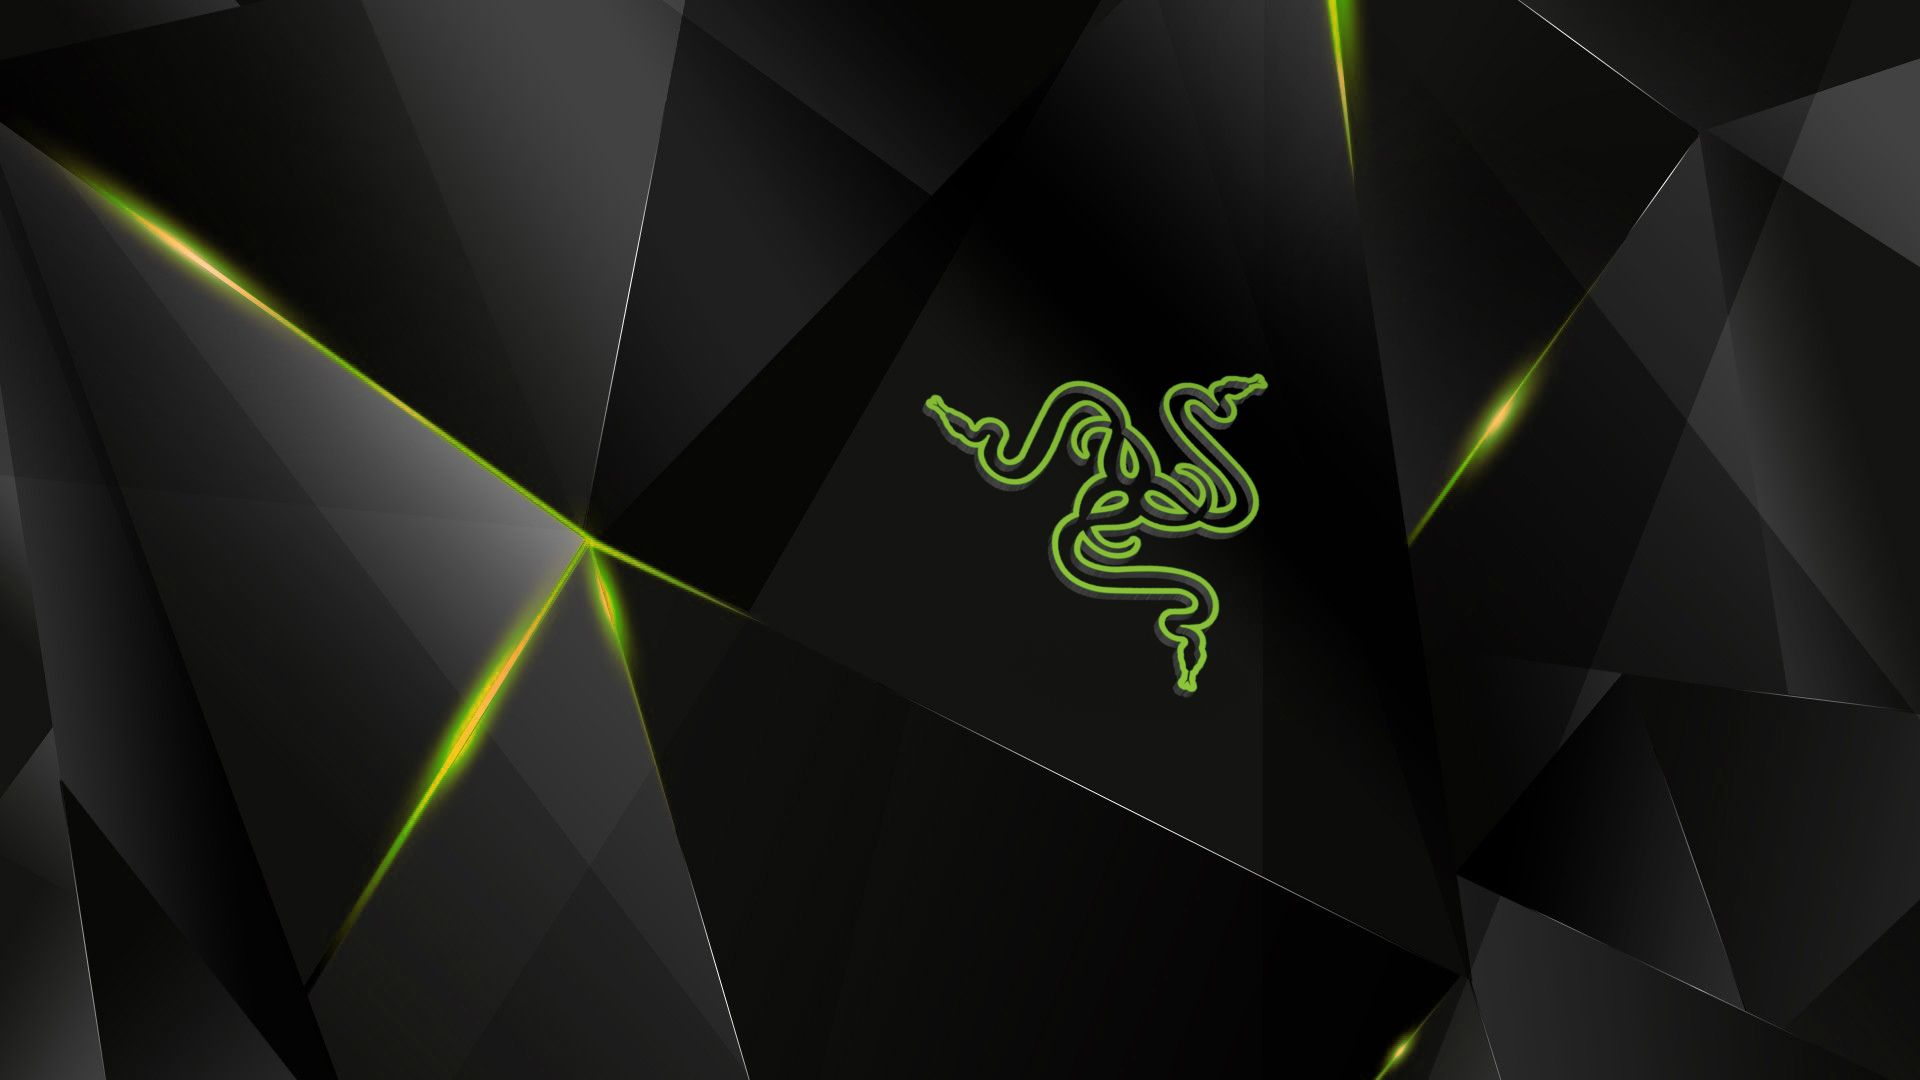 Razer Wallpapers Hd Wallpapers Backgrounds Images Art Photos Gaming Wallpapers Hd Game Wallpaper Iphone Gaming Wallpapers